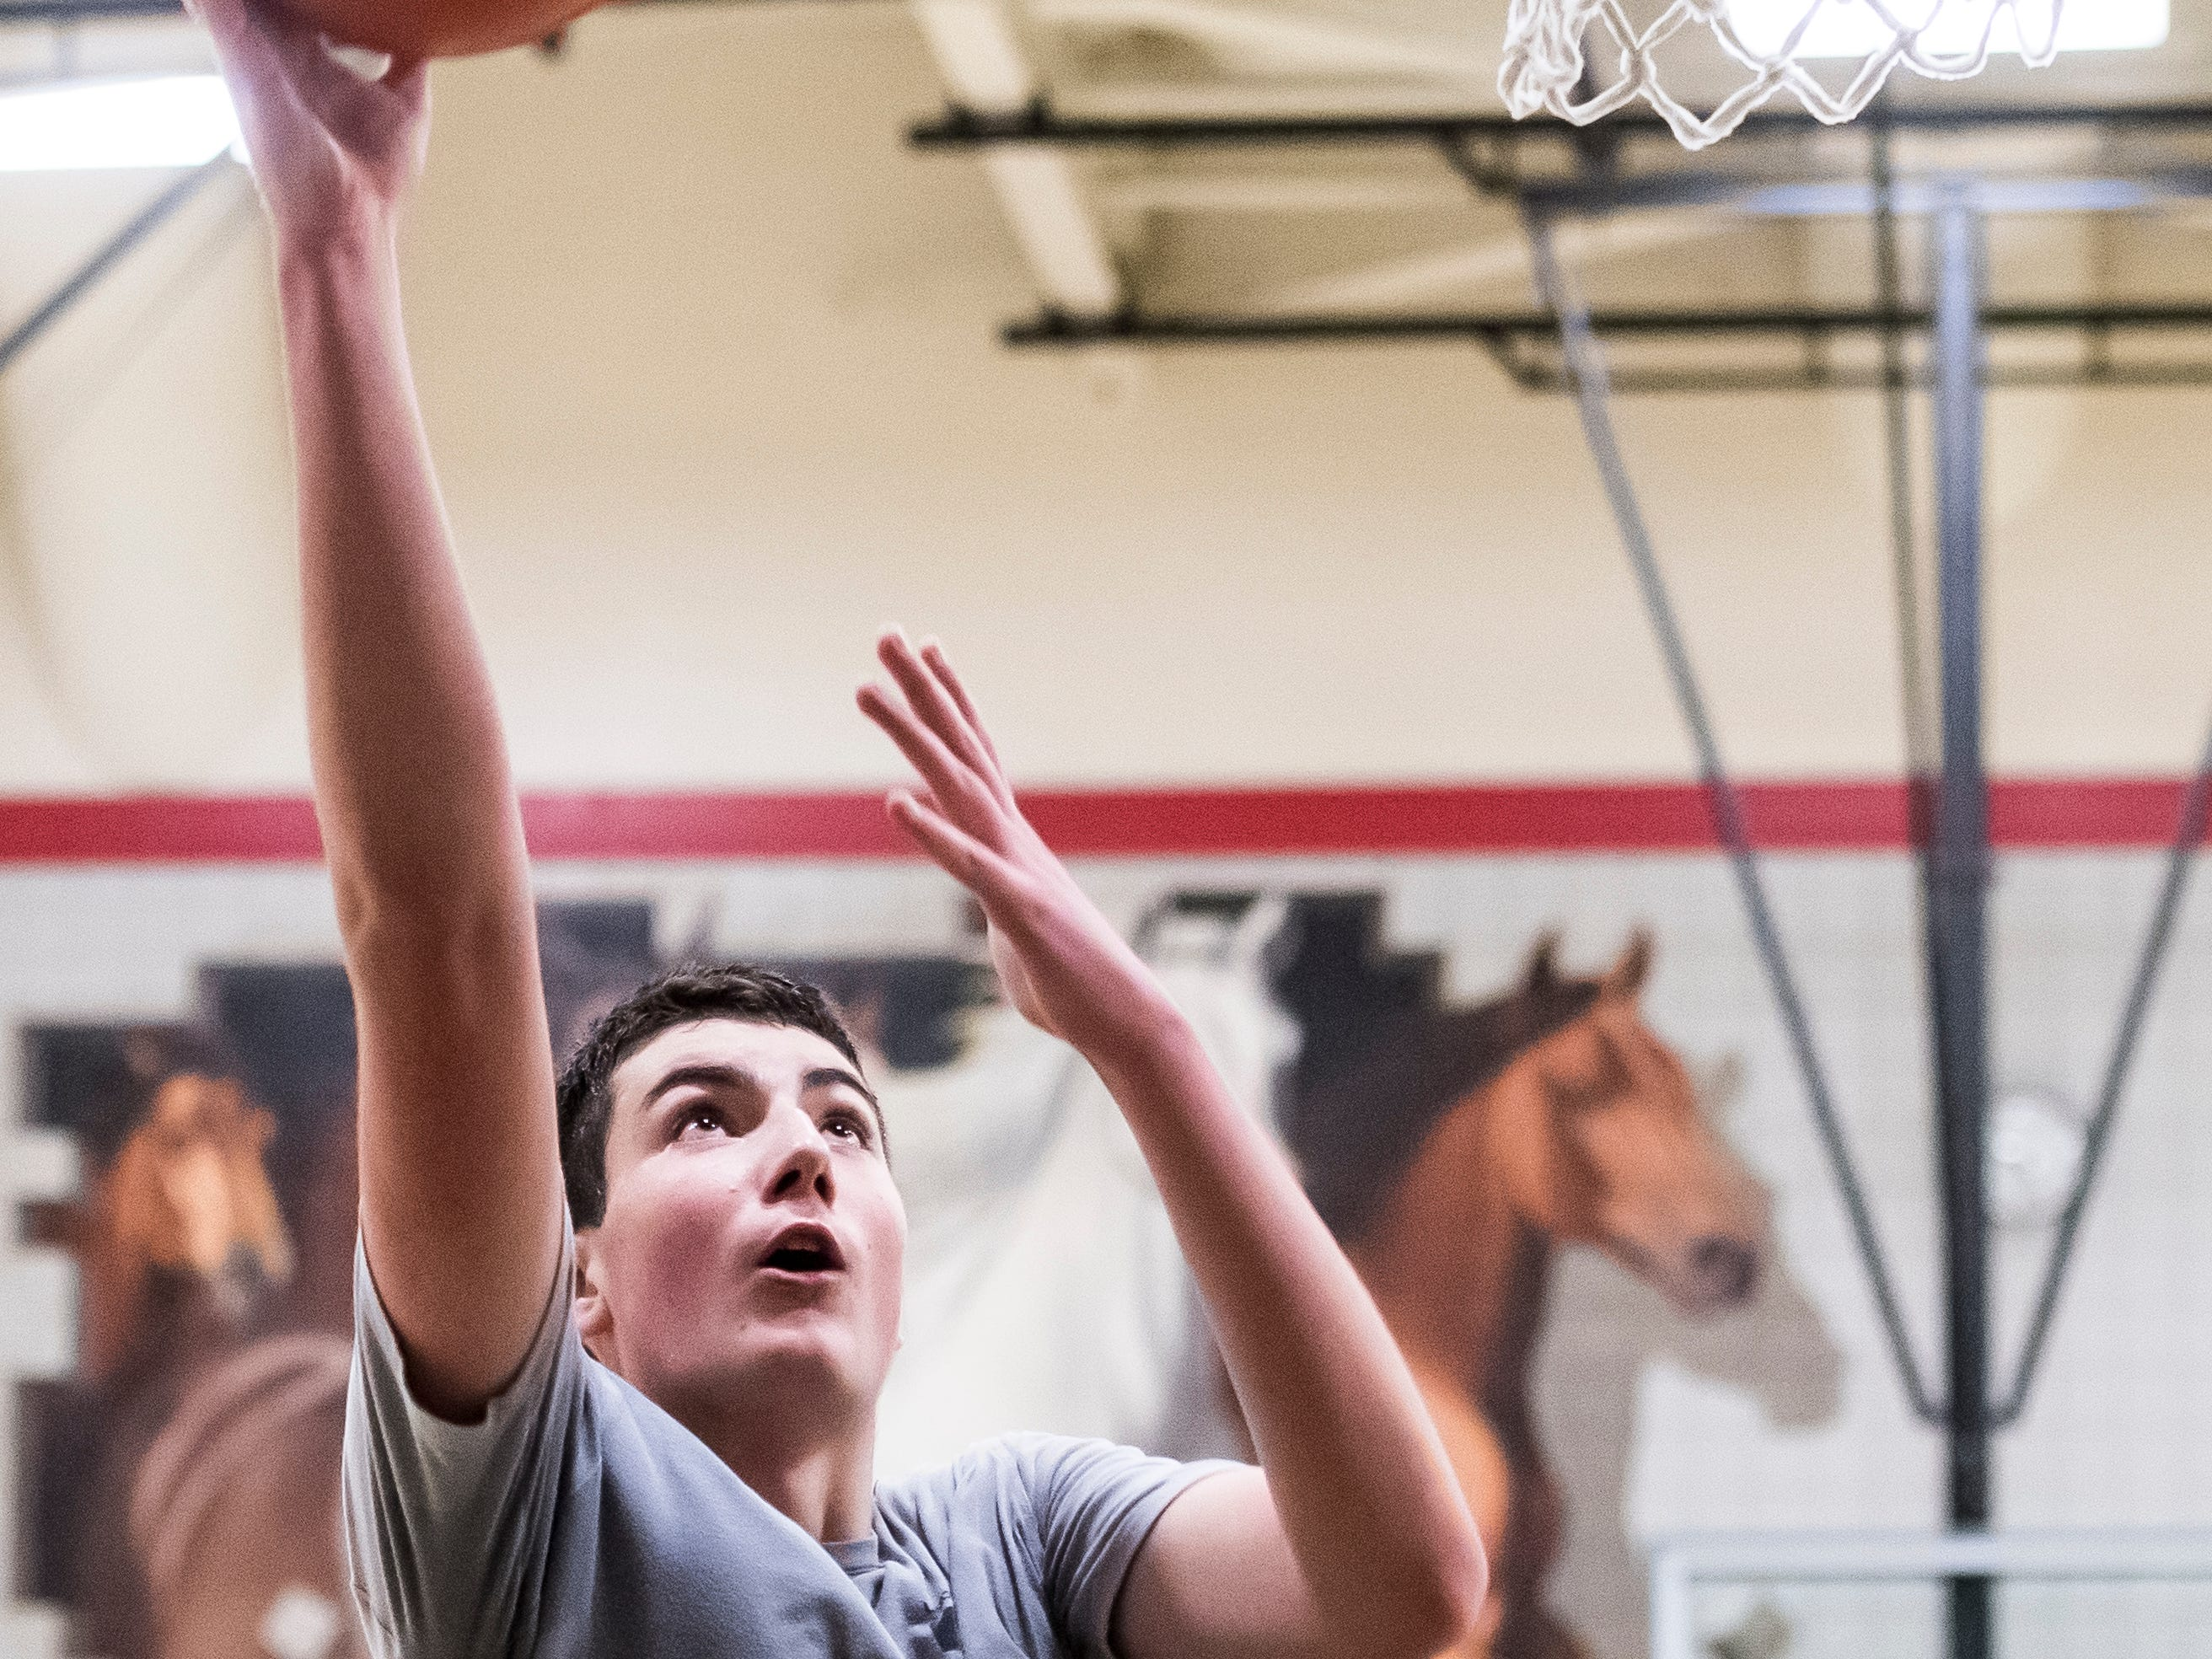 South Western's John Fenwick scores on a layup during the first official day of winter sports practice on Friday, November 16, 2018.